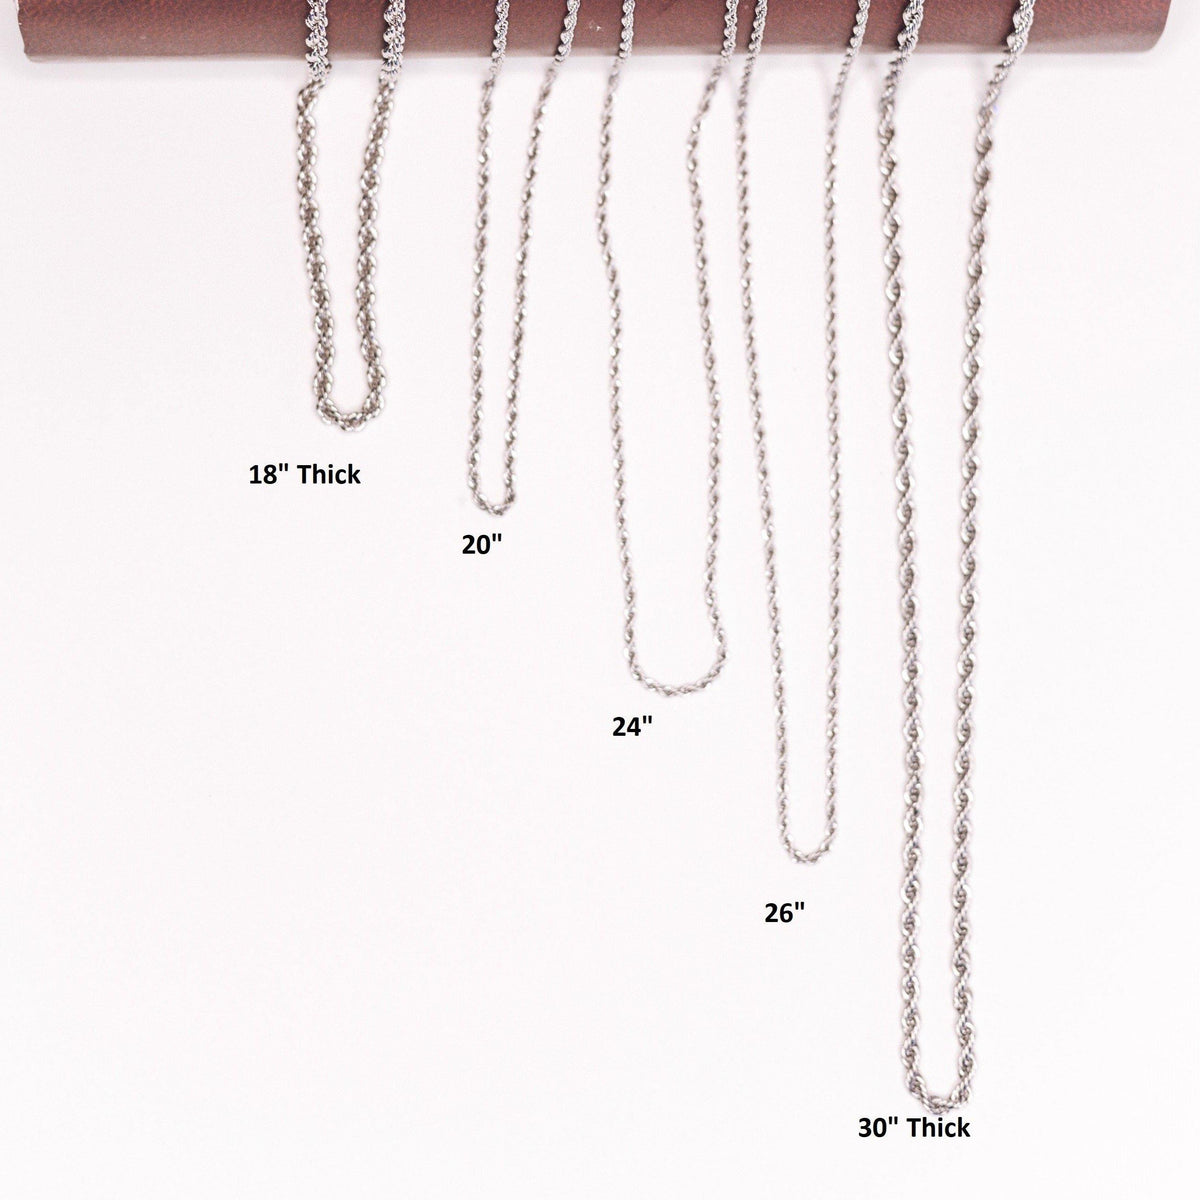 wide range of rope necklaces